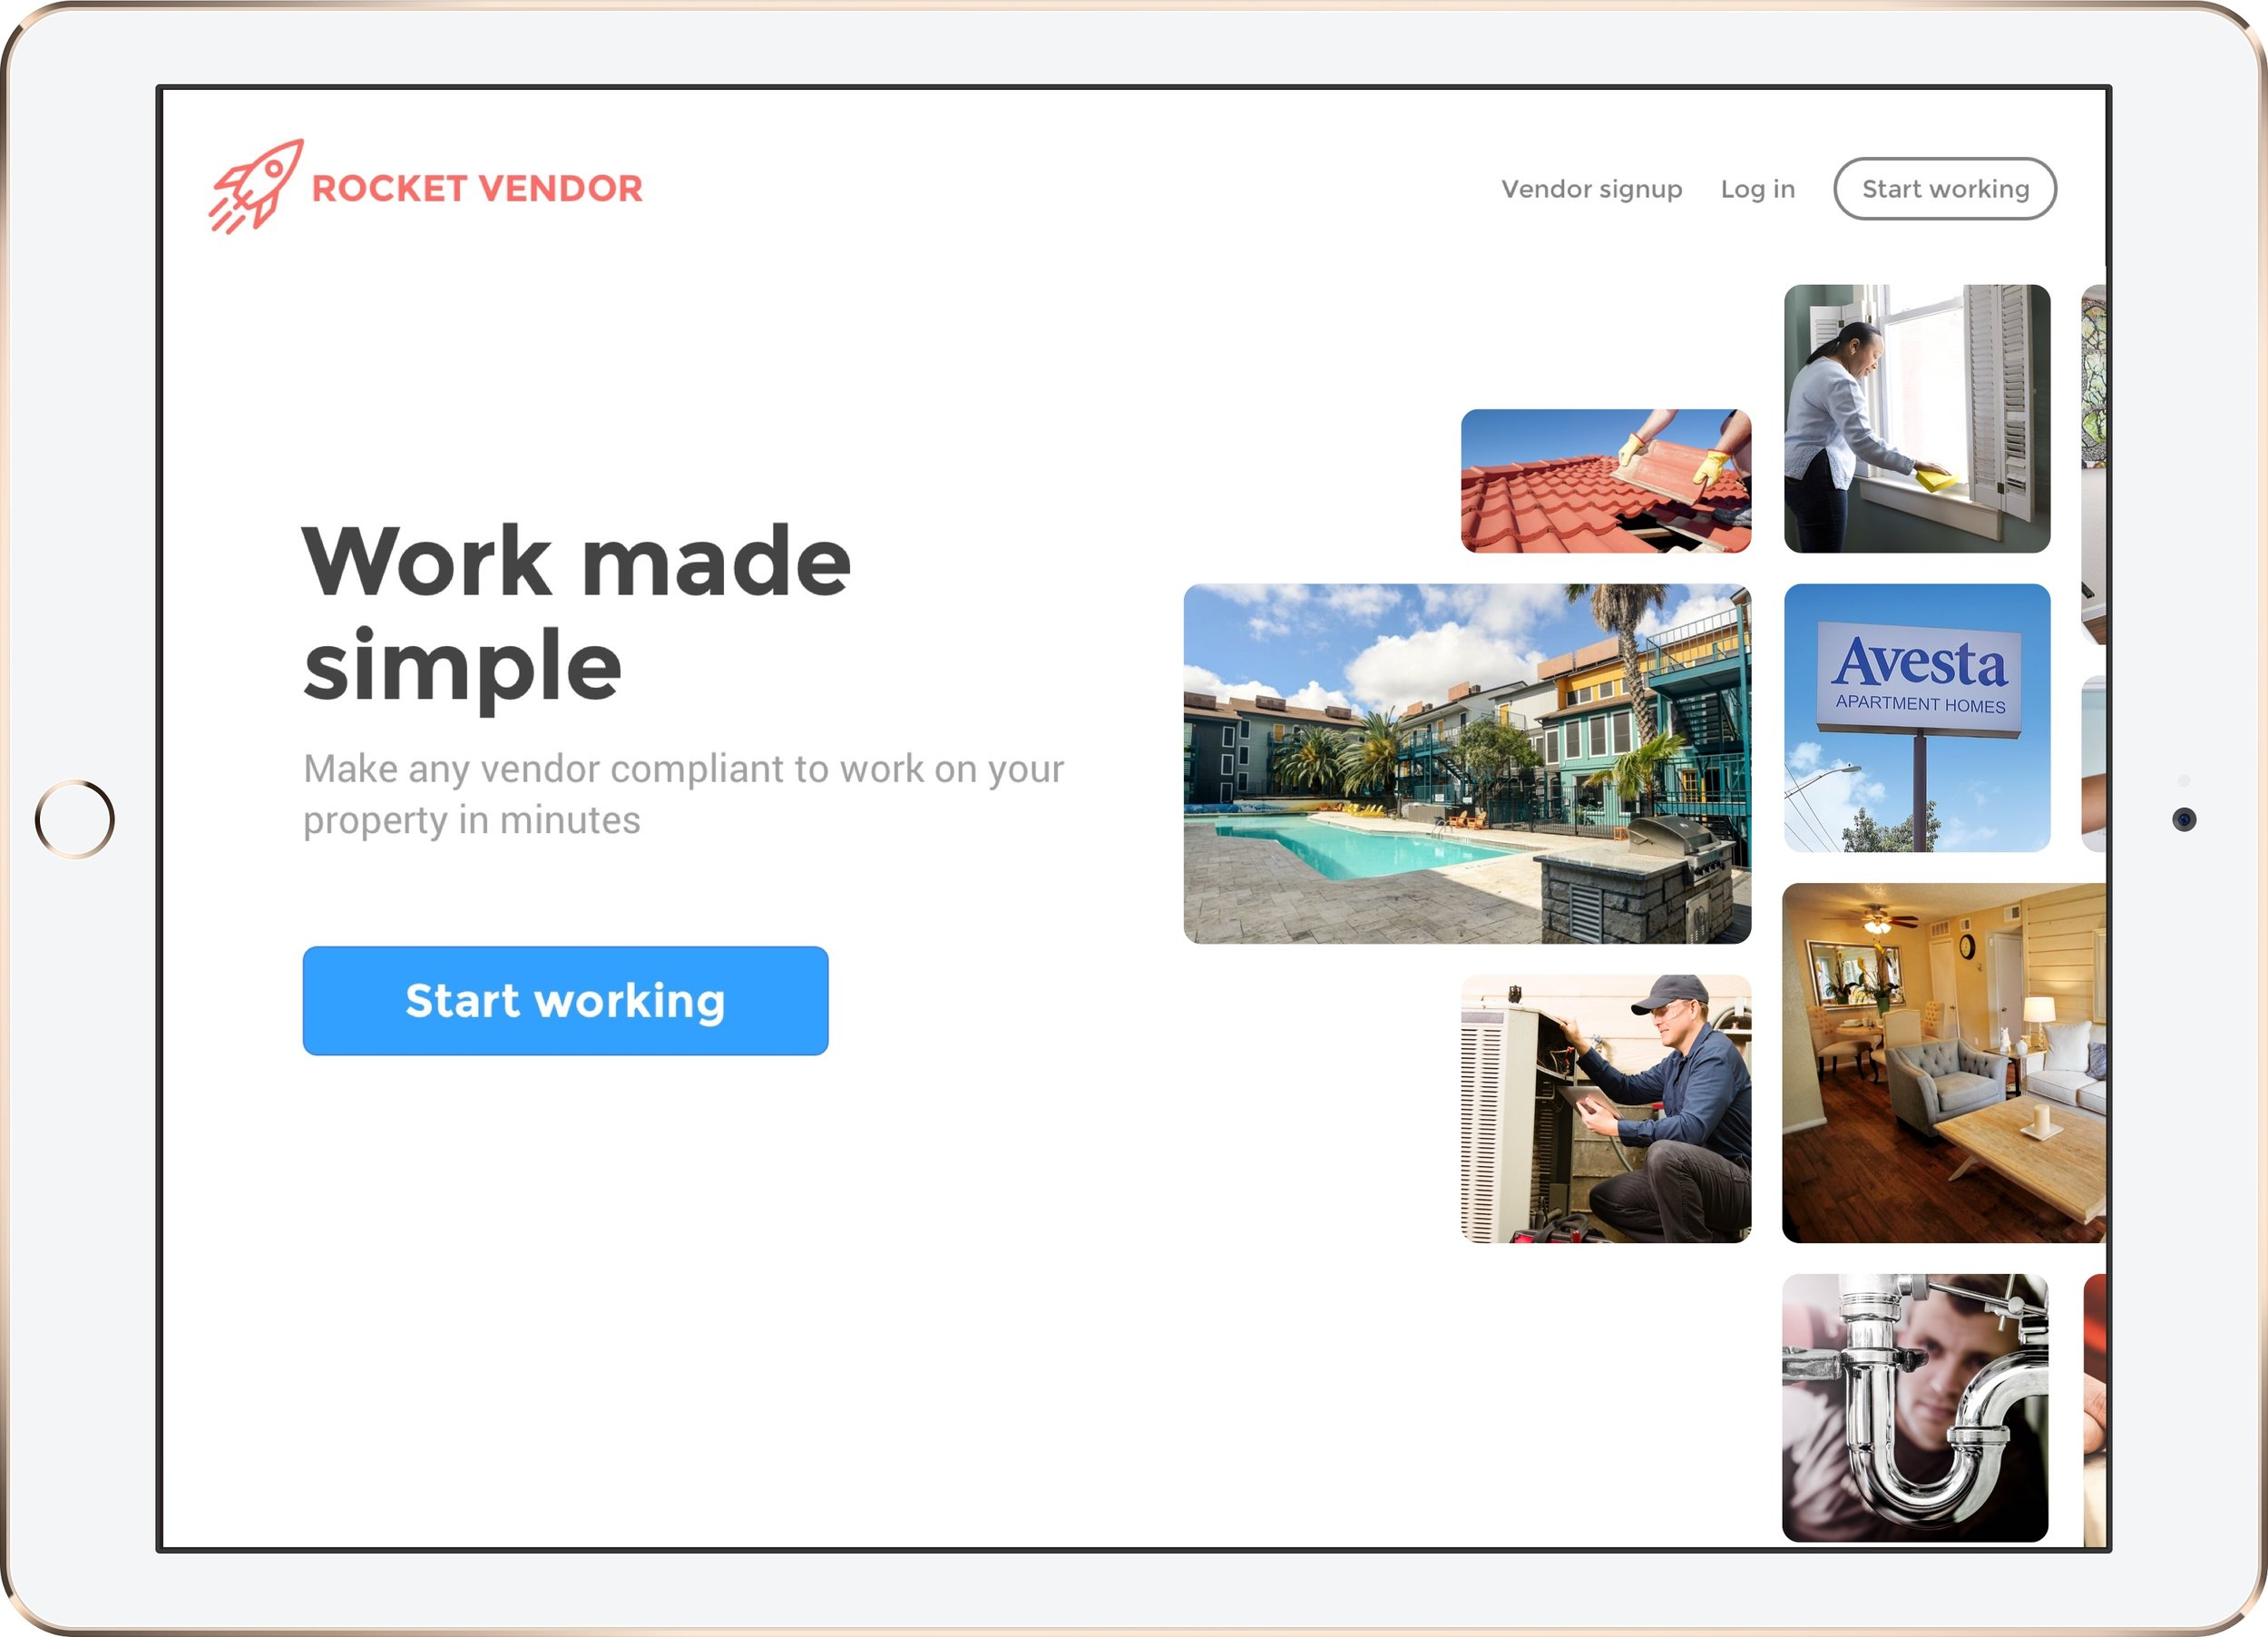 Trustwork - This startup needed help to rapidly design and build their first product for a big client. Read what the co-founders shared about their experience...